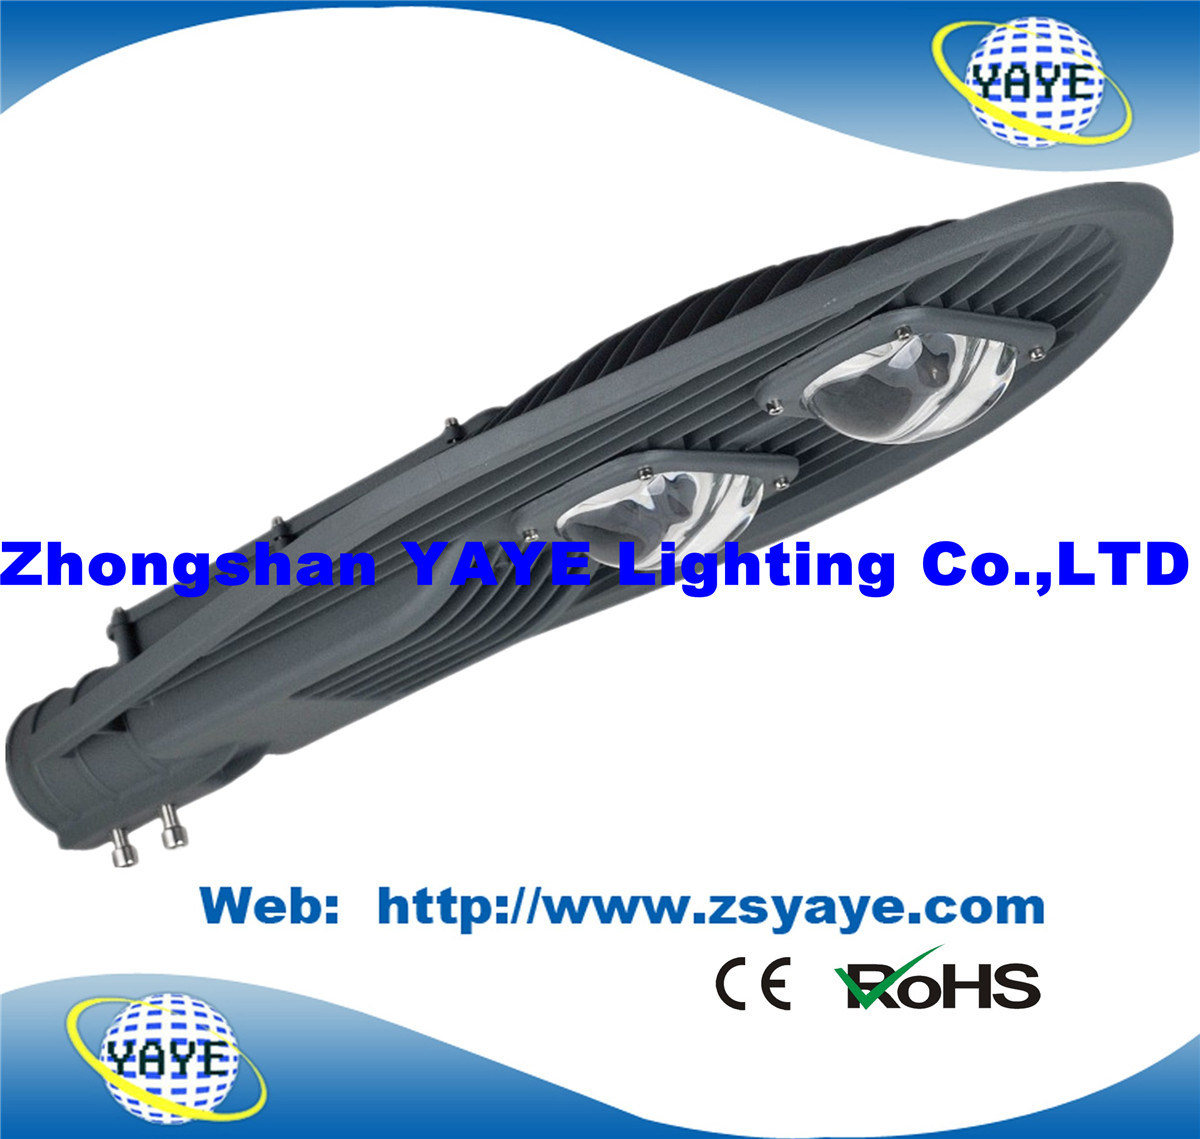 Yaye 18 Hot Sell 150W COB LED Street Light / COB 150W LED Street Lighting with 3 Years Warranty